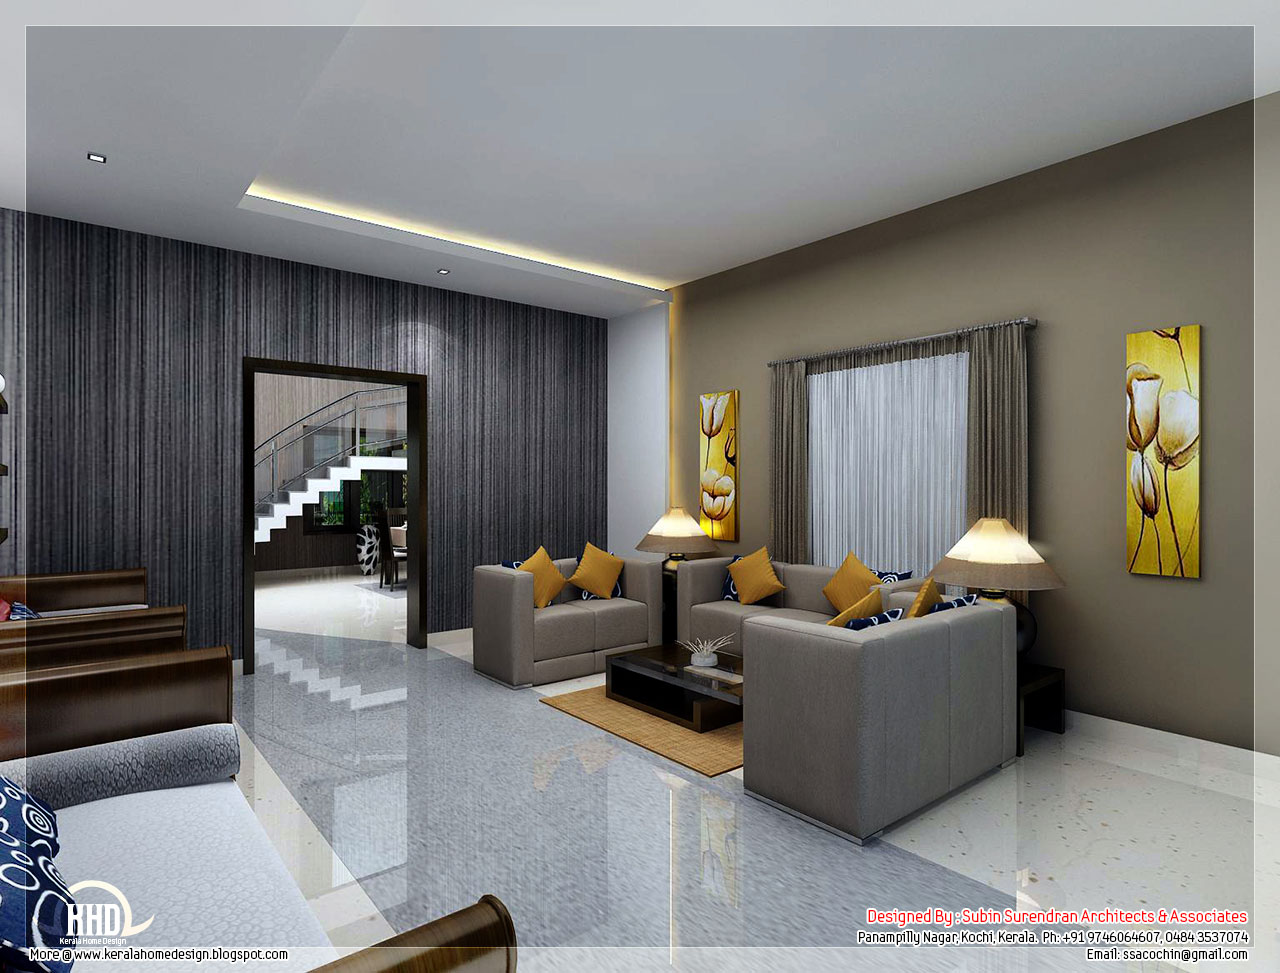 Awesome 3d interior renderings kerala home design and for Kerala model interior designs